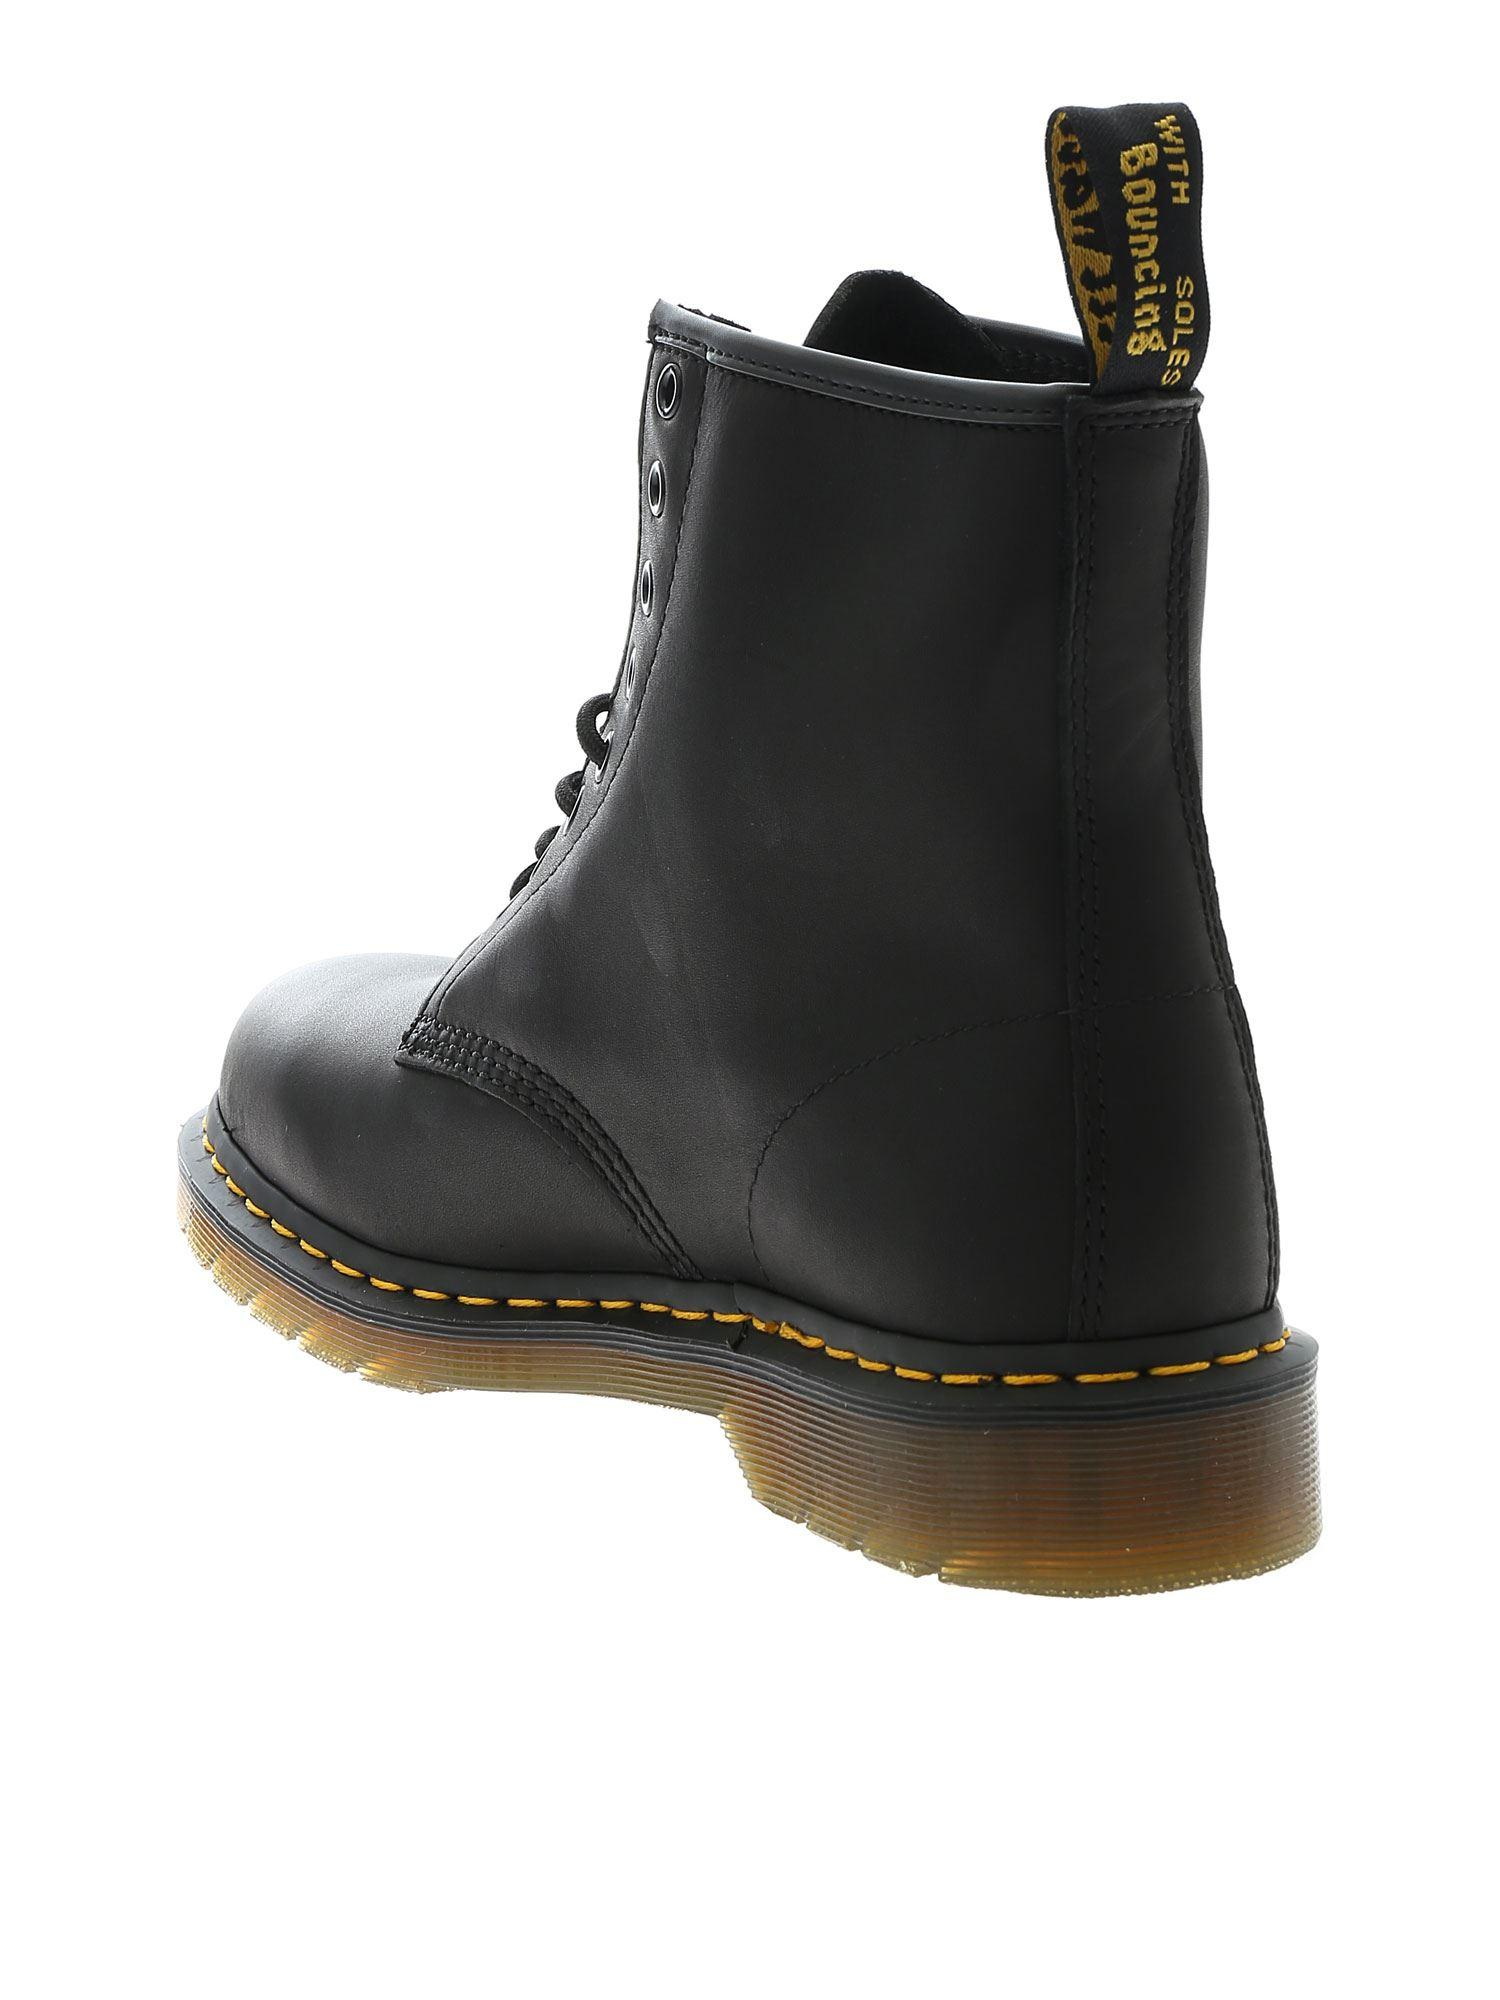 Dr. Martens Leather 1460 Greasy Boots